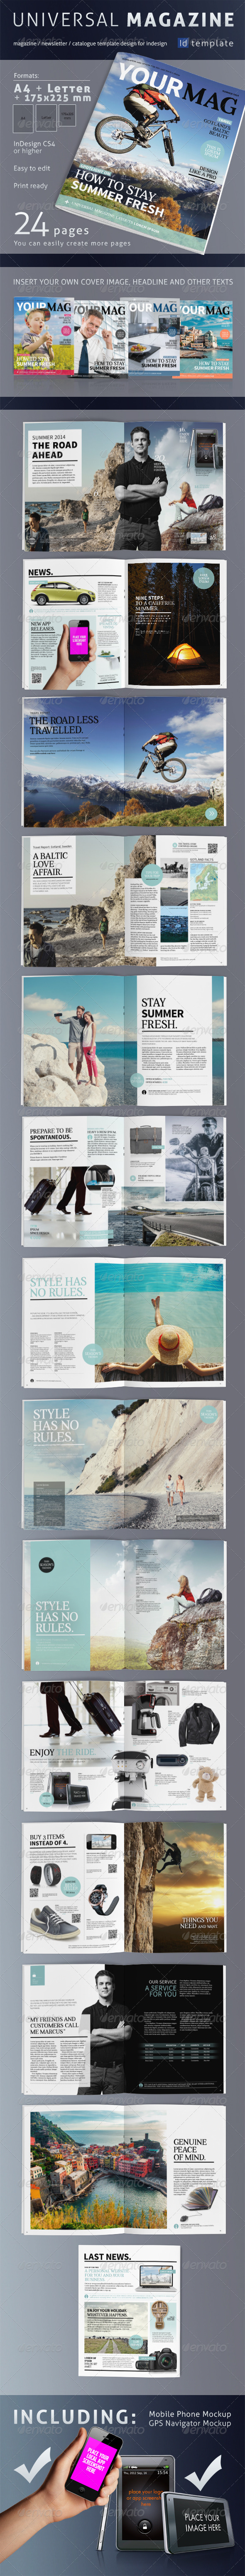 24 Page Universal Magazine A4+Letter - Magazines Print Templates